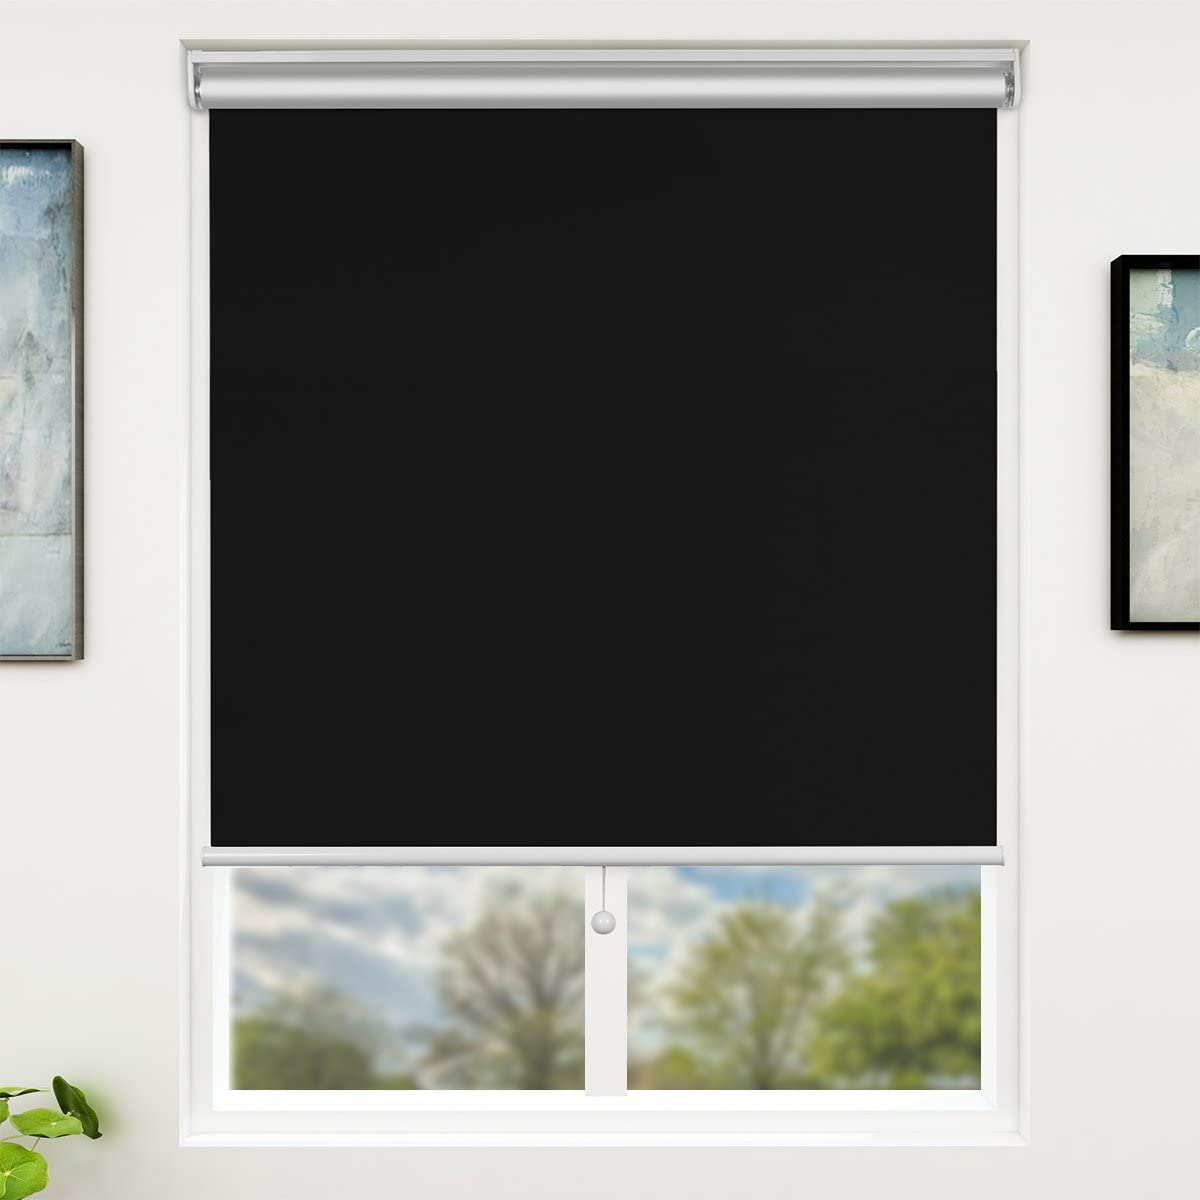 "SUNFREE Blackout Window Shades Cordless Window Blinds for Home Office 27"" x 72"", Black"